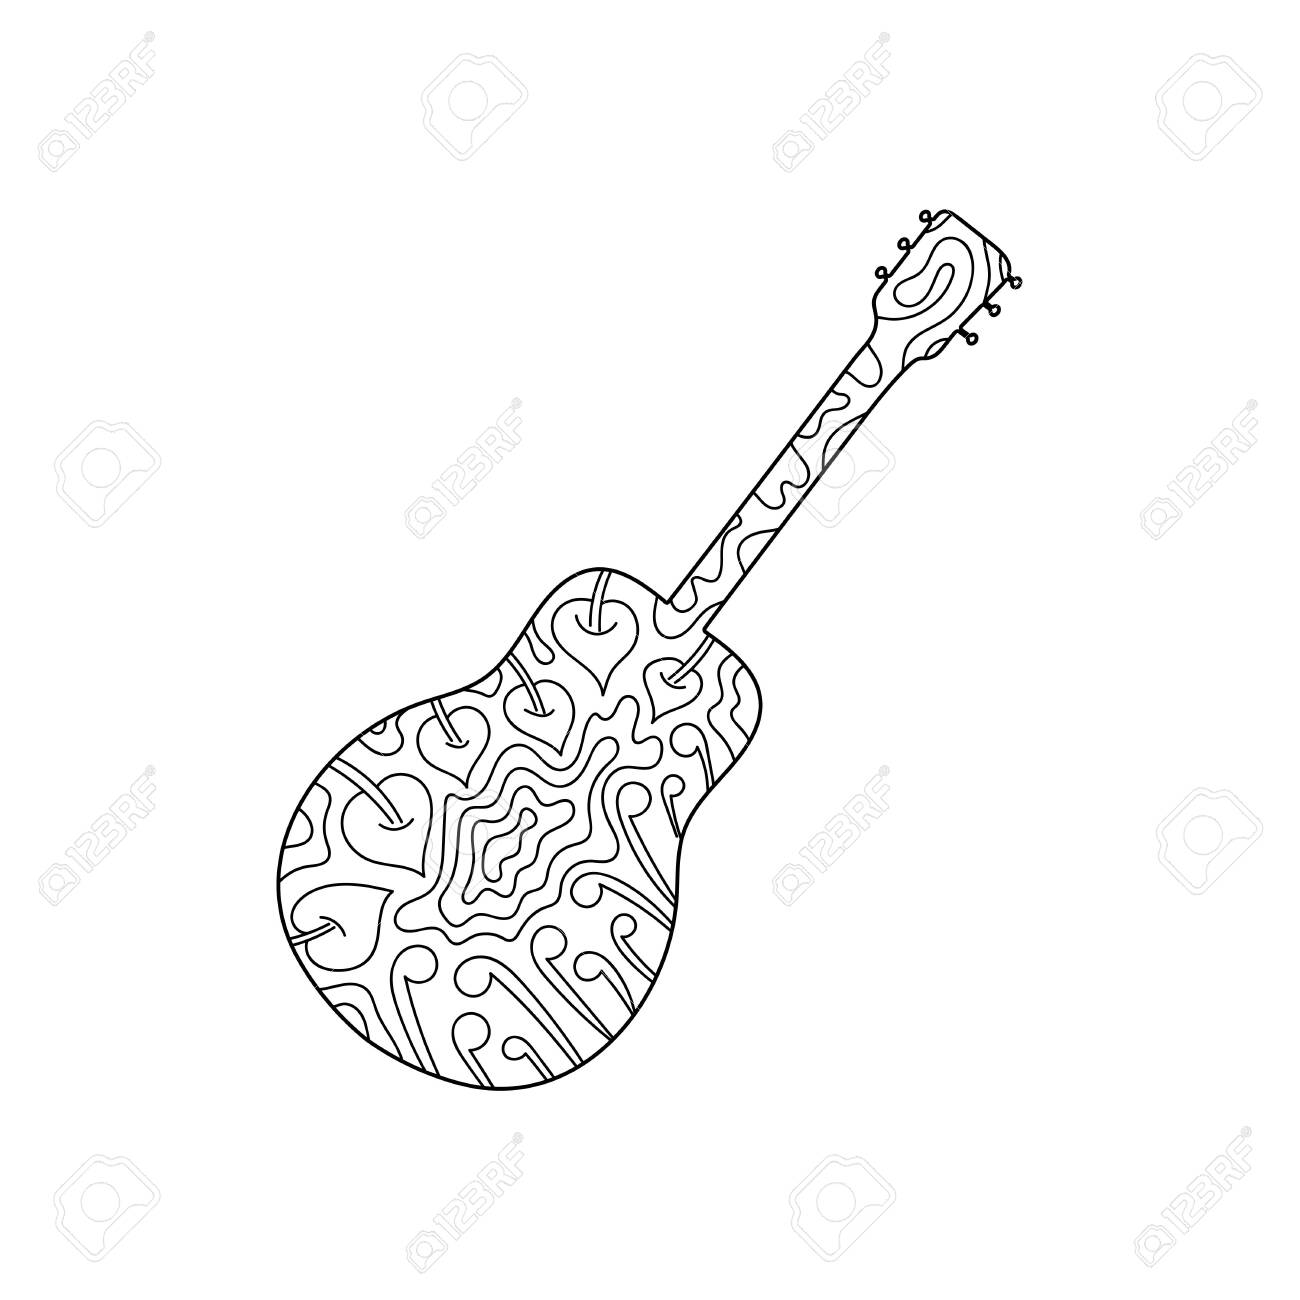 Contour Musical Instrument Guitar Hand Drawn Coloring Book Royalty Free Cliparts Vectors And Stock Illustration Image 144006922